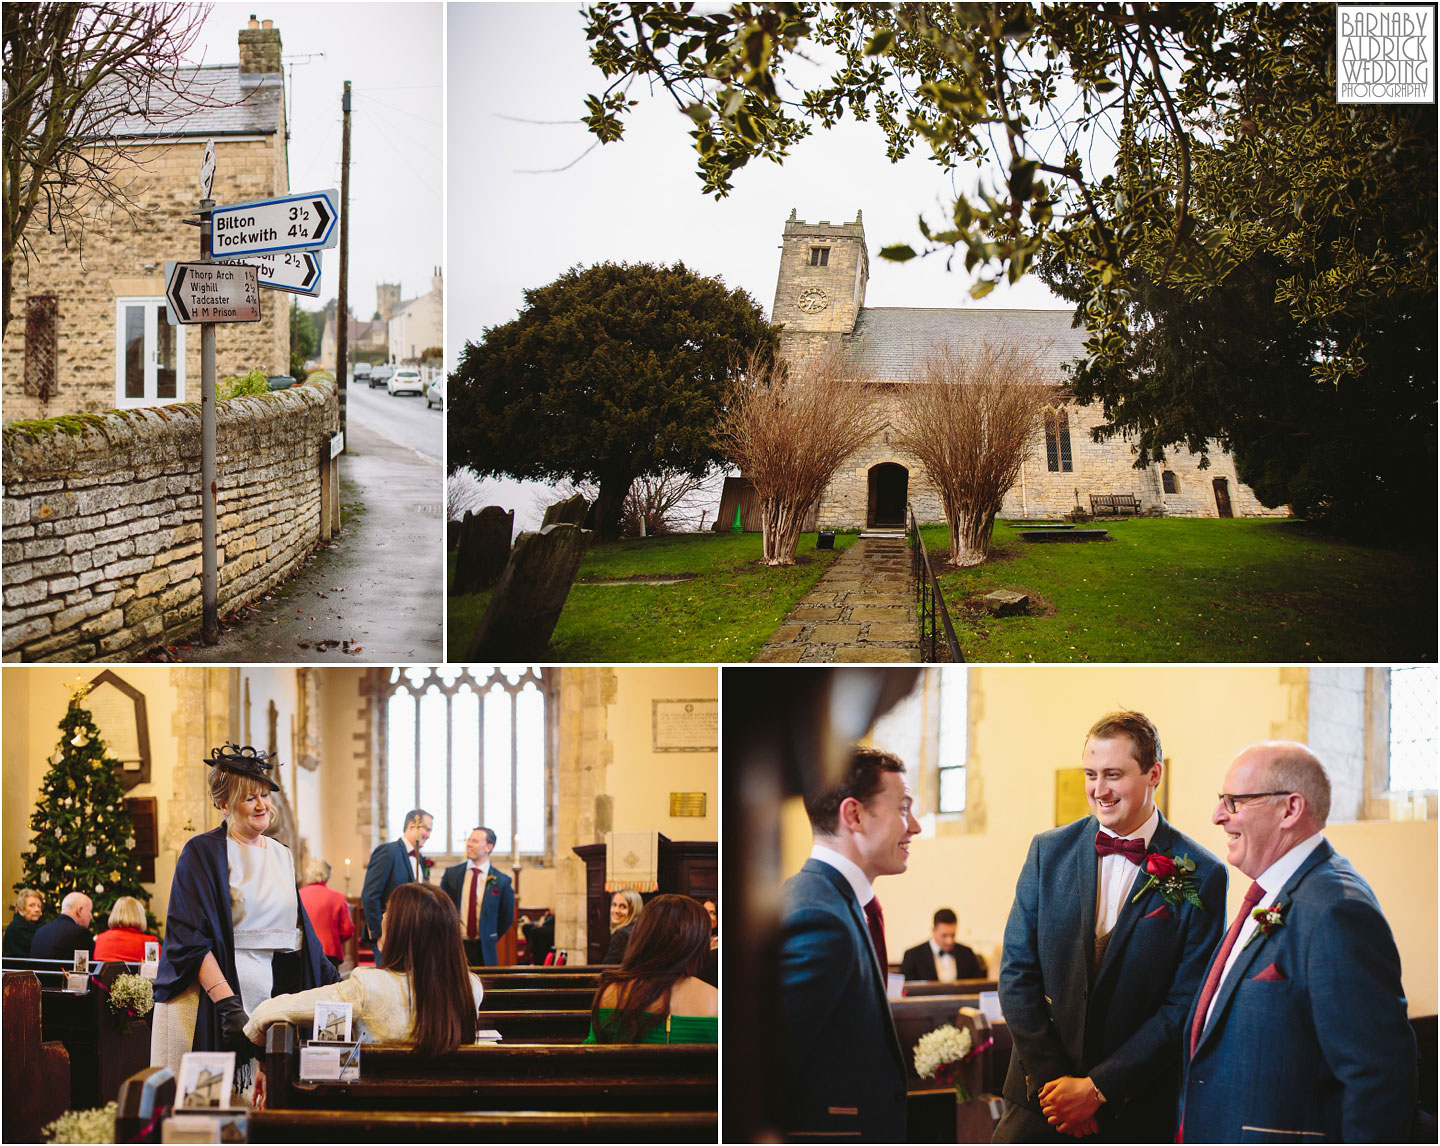 Wedding photography at St Peter's Church near Wetherby, Priory Cottages Barn Wedding Venue Photos, Yorkshire Barn Venue Photos